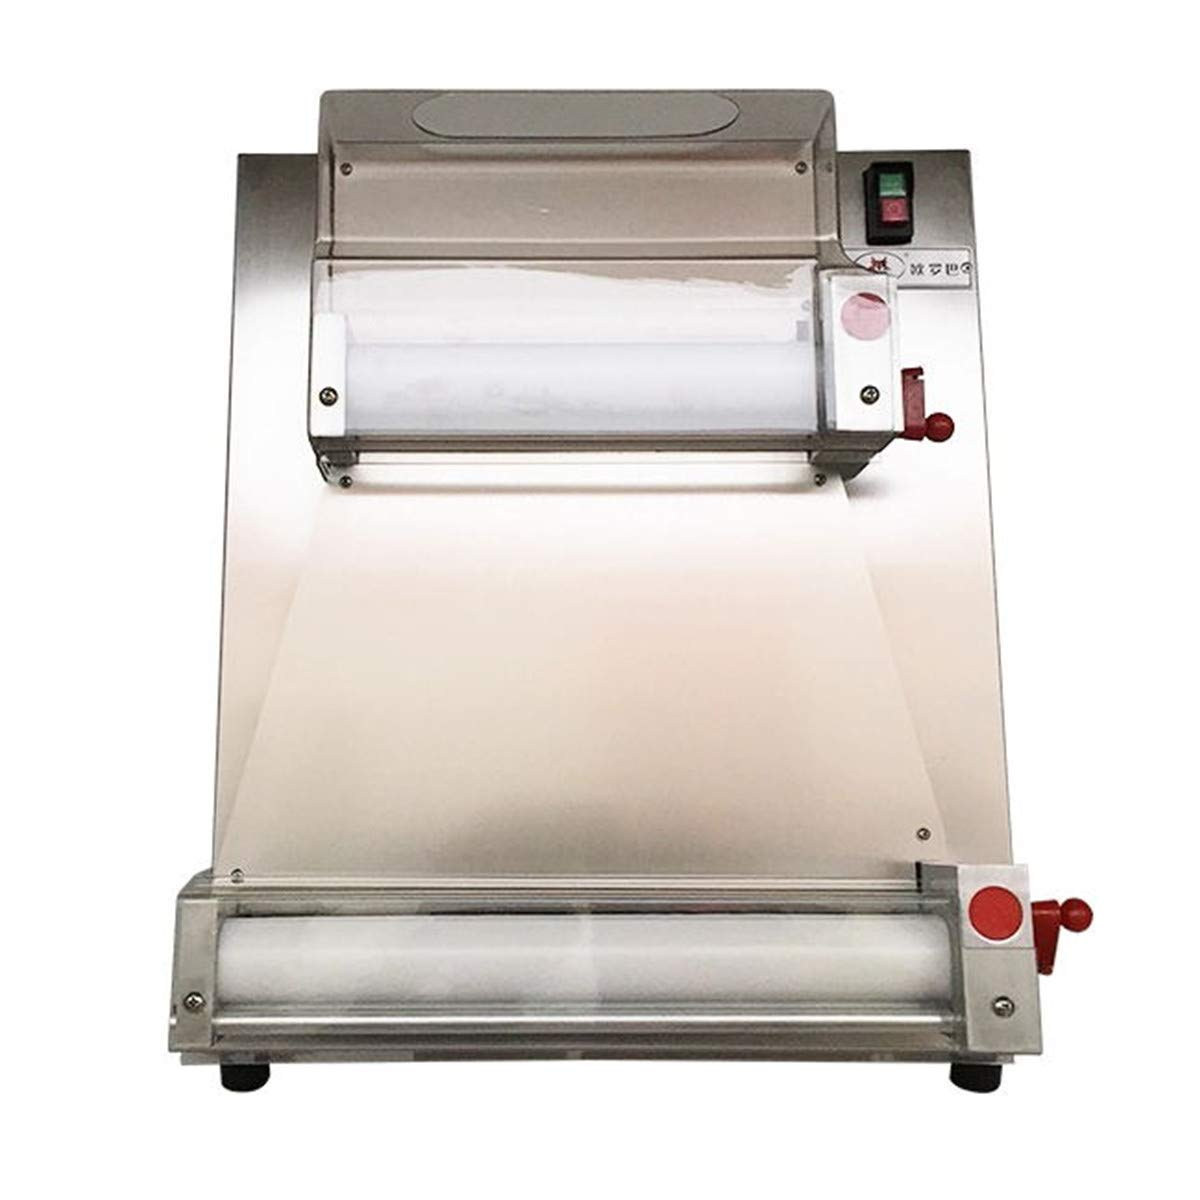 Dshot Automatic Pizza Dough Roller Sheeter Machine,Making 6-16 inch Pizza Dough,Pizza Making Machine,Food Preparation Equipment 61oad-yj6HL._SL1200_